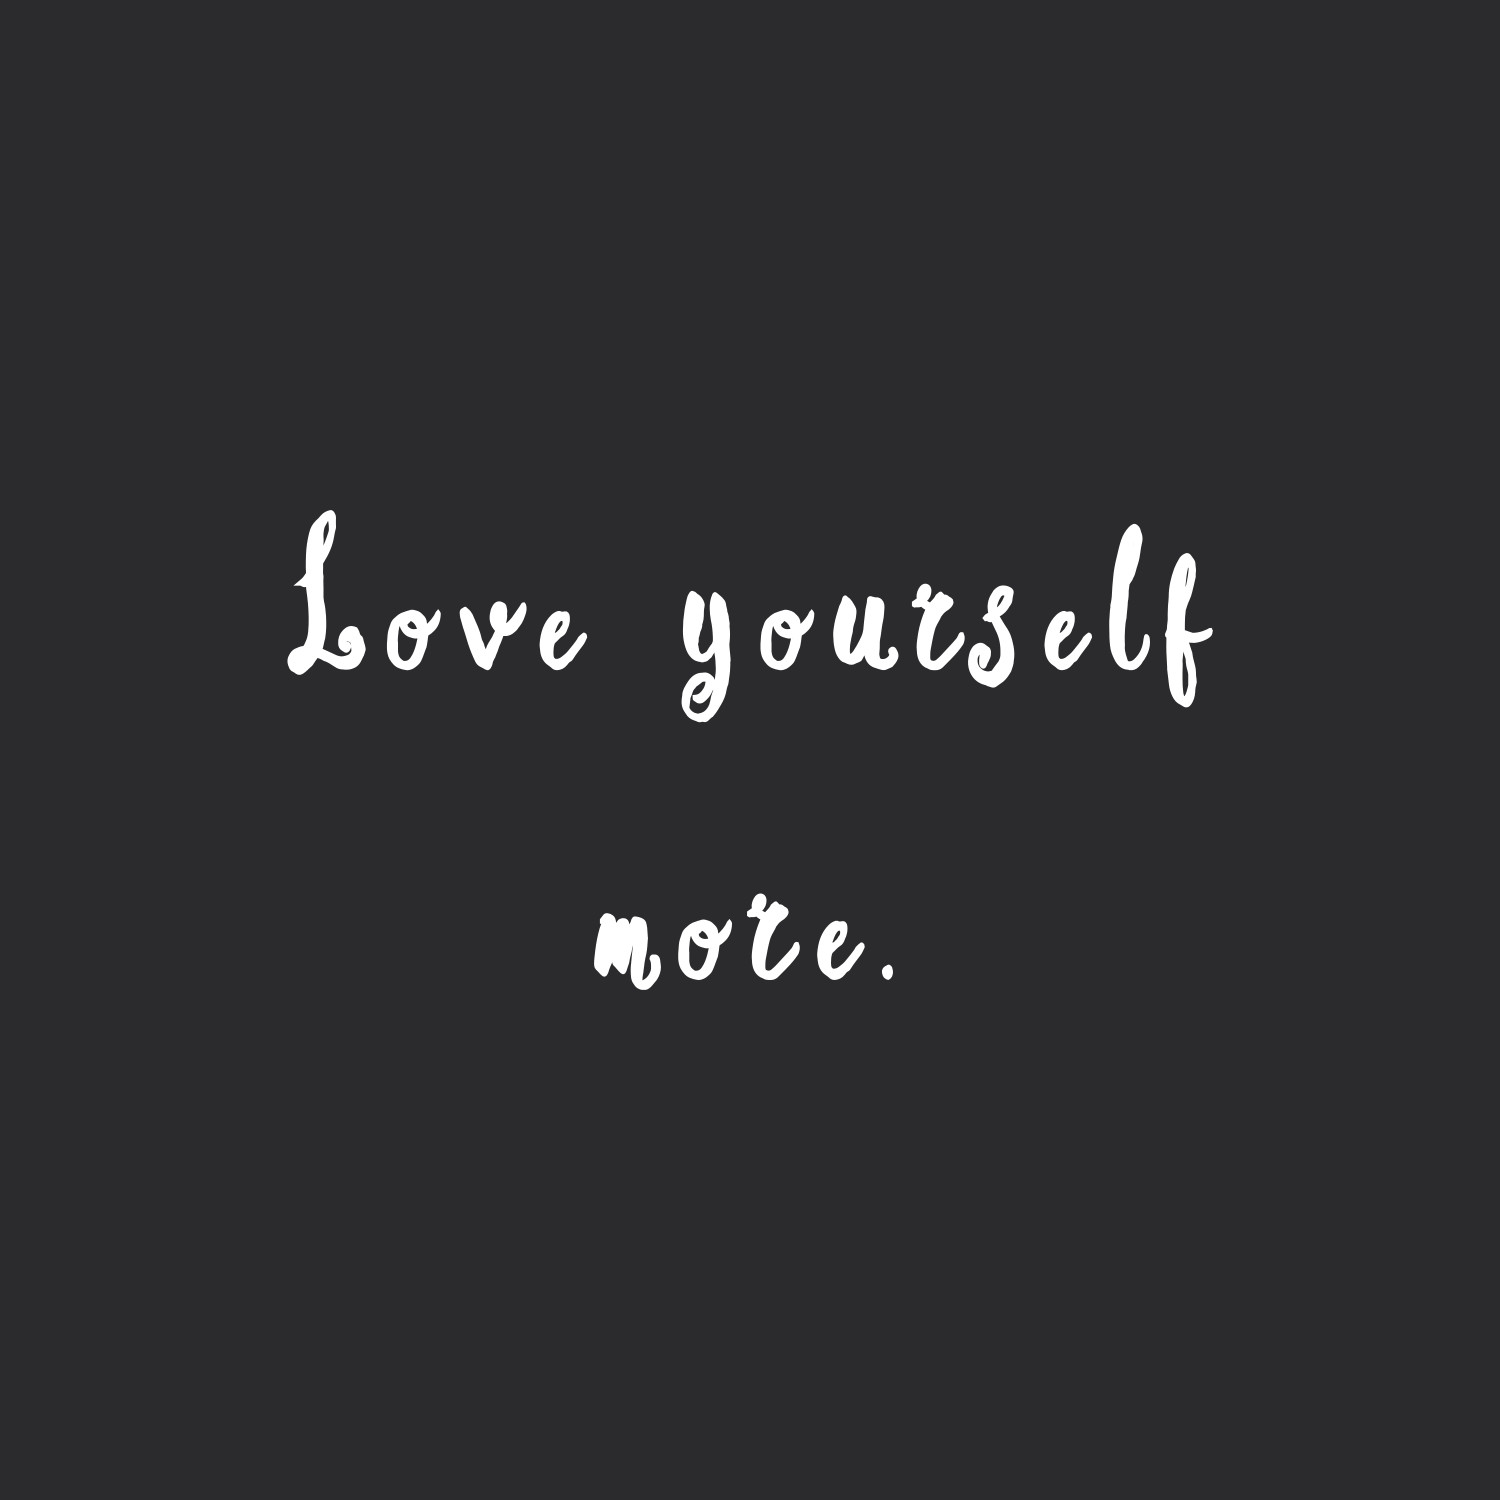 Loving Yourself Quote Quotes Love Yourself Inspiration 100 Quotes About Loving Yourself